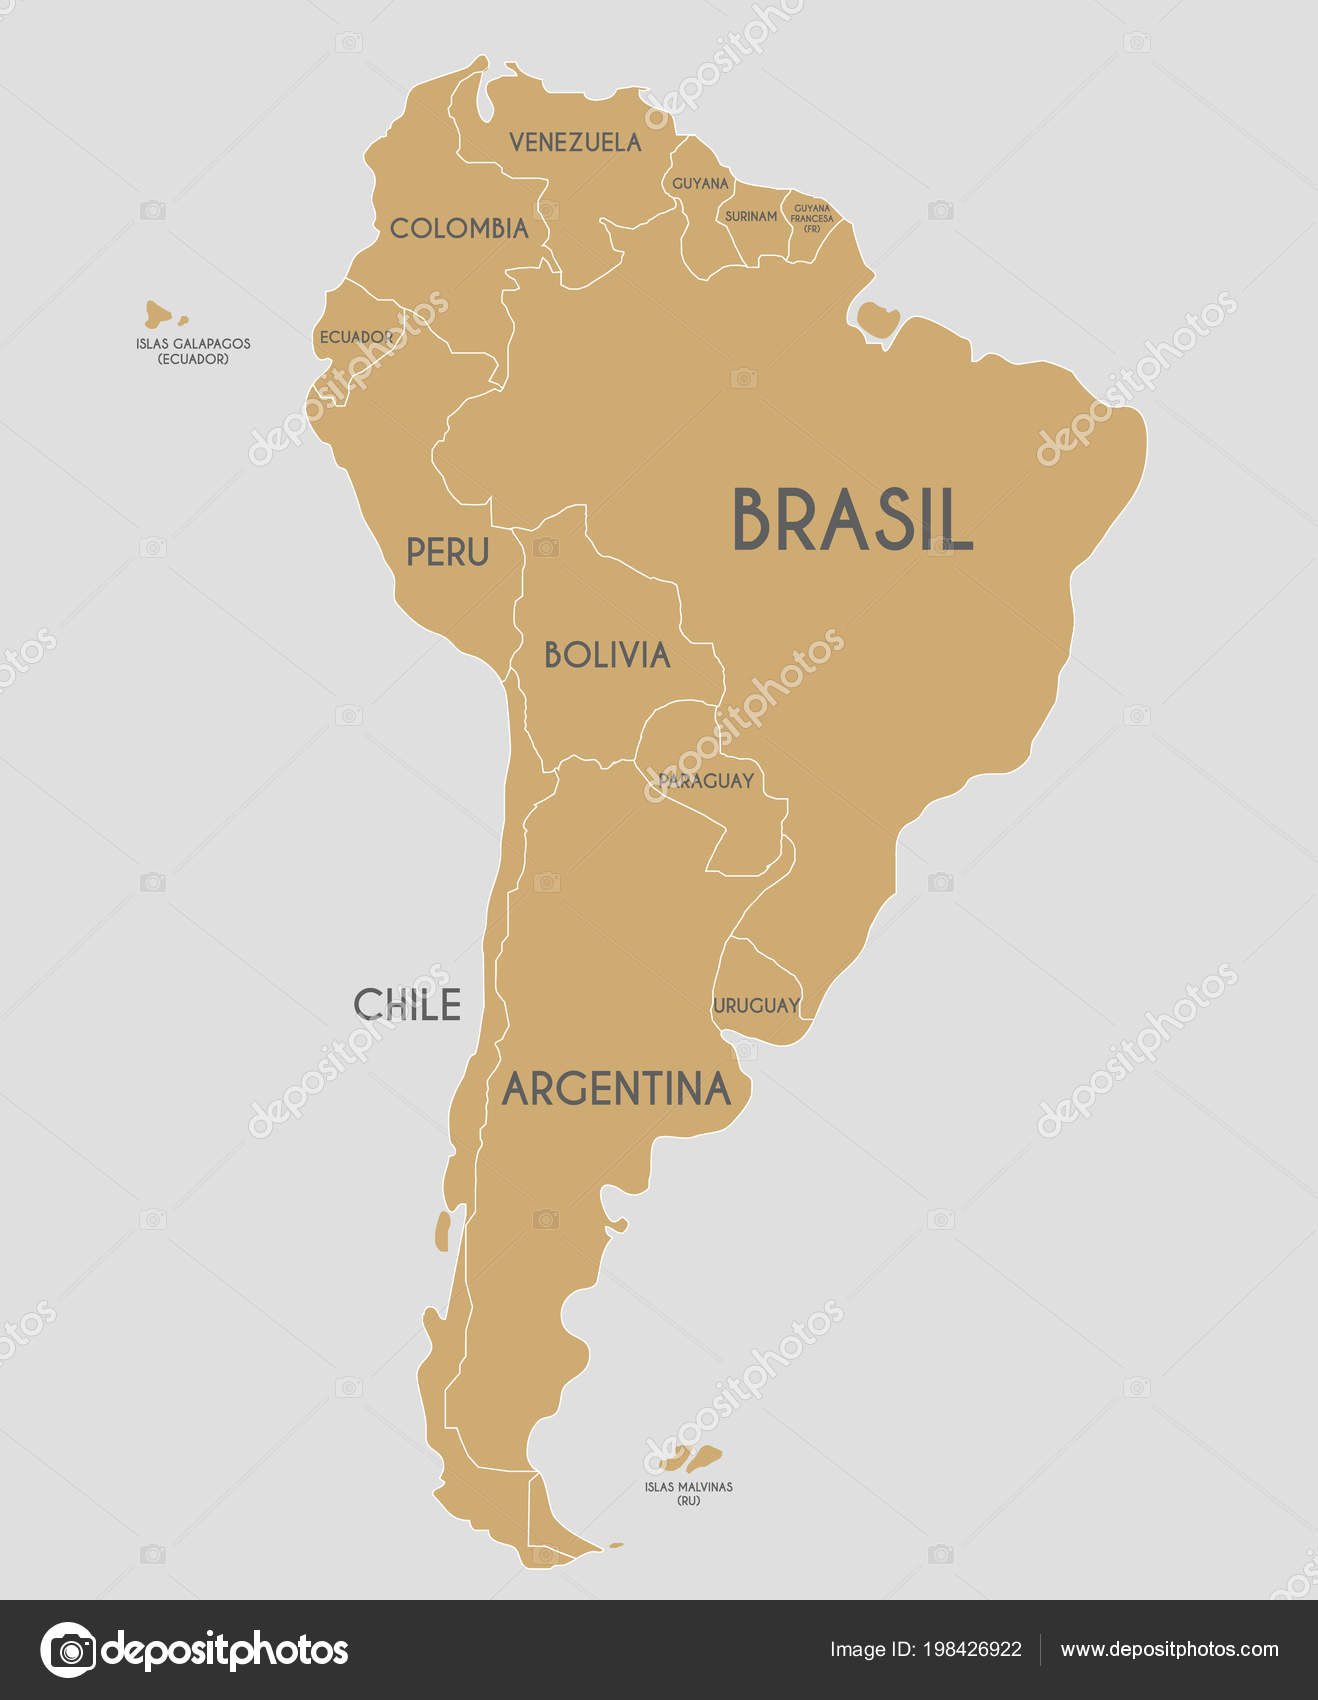 Political South America Map Vector Illustration Country Names     Political South America Map Vector Illustration Country Names Spanish  Editable     Stock Vector